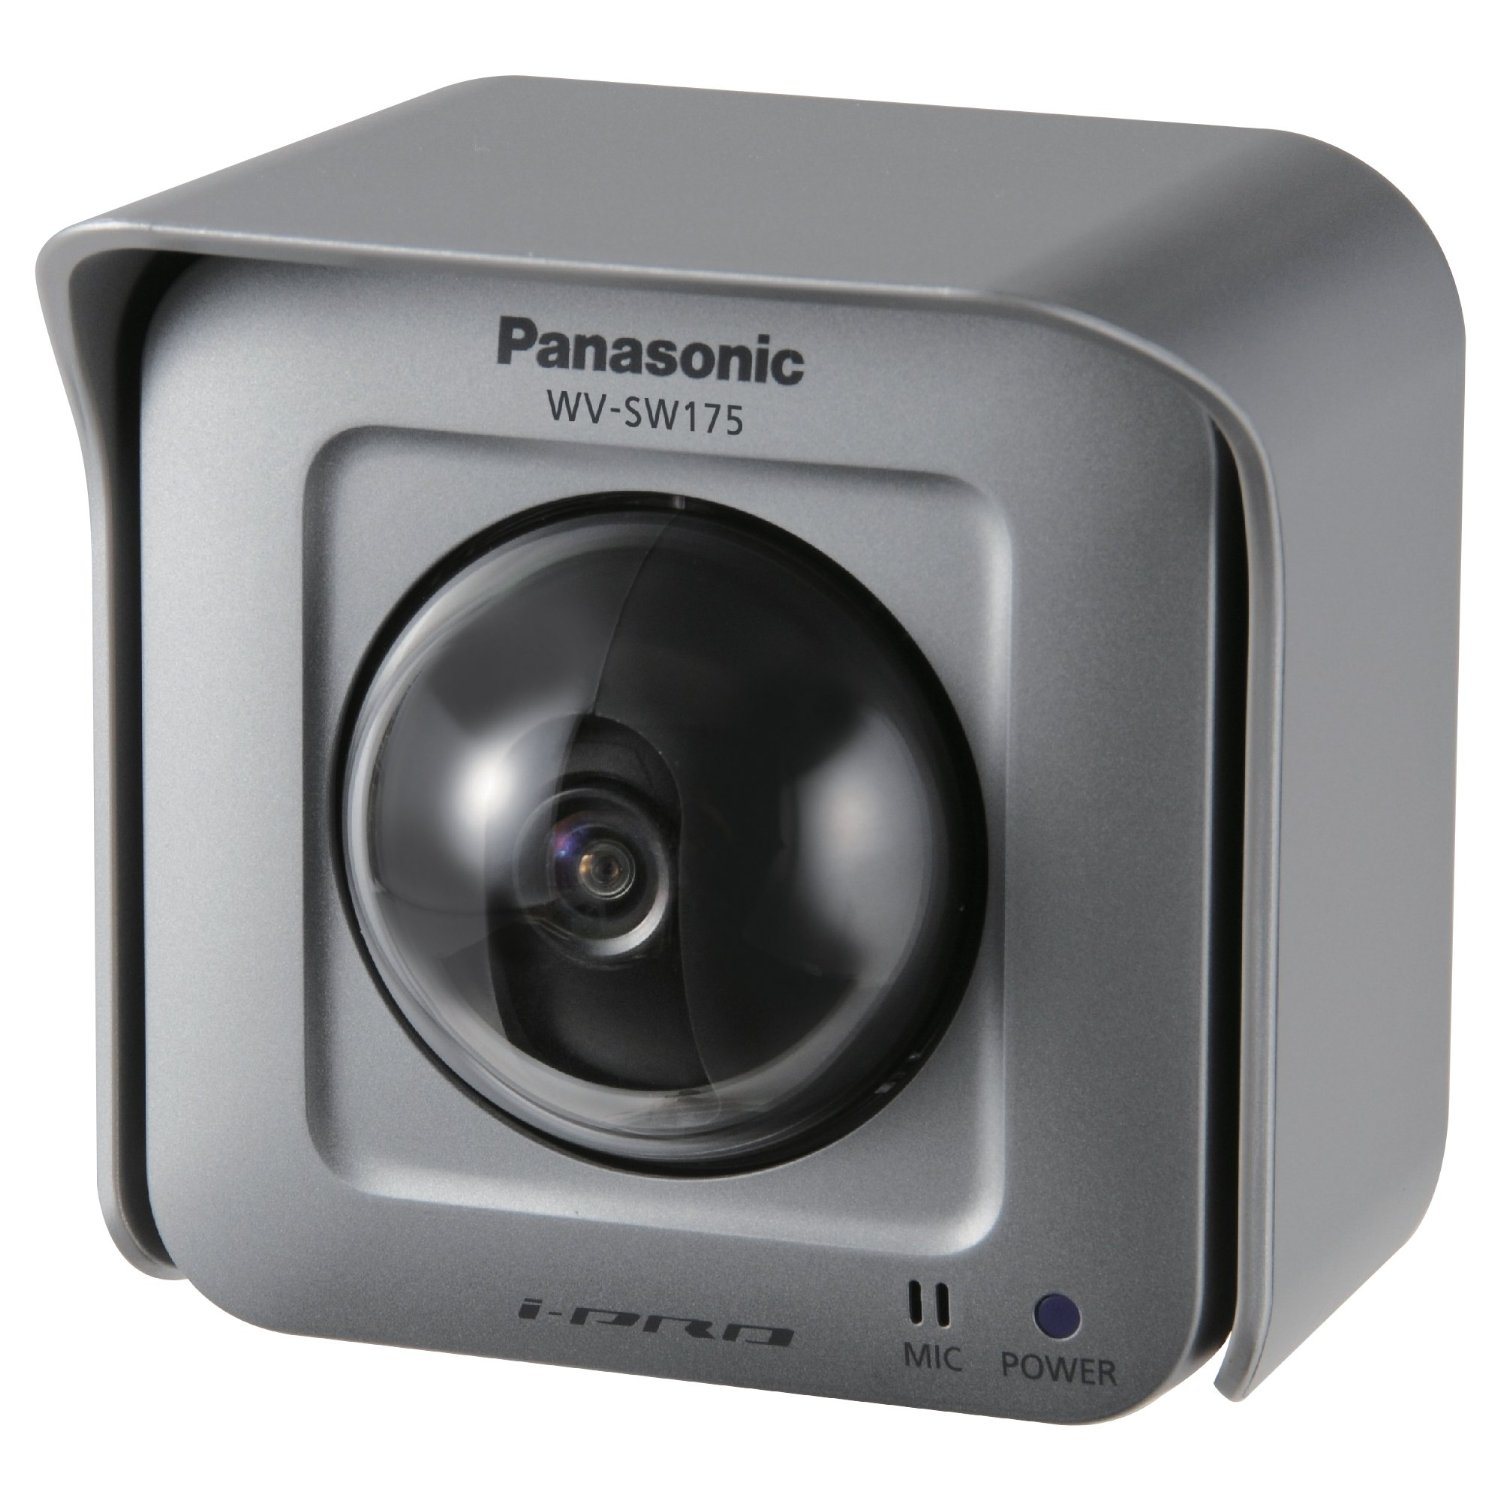 Panasonic Outdoor Pan-Tilting POE HD Camera